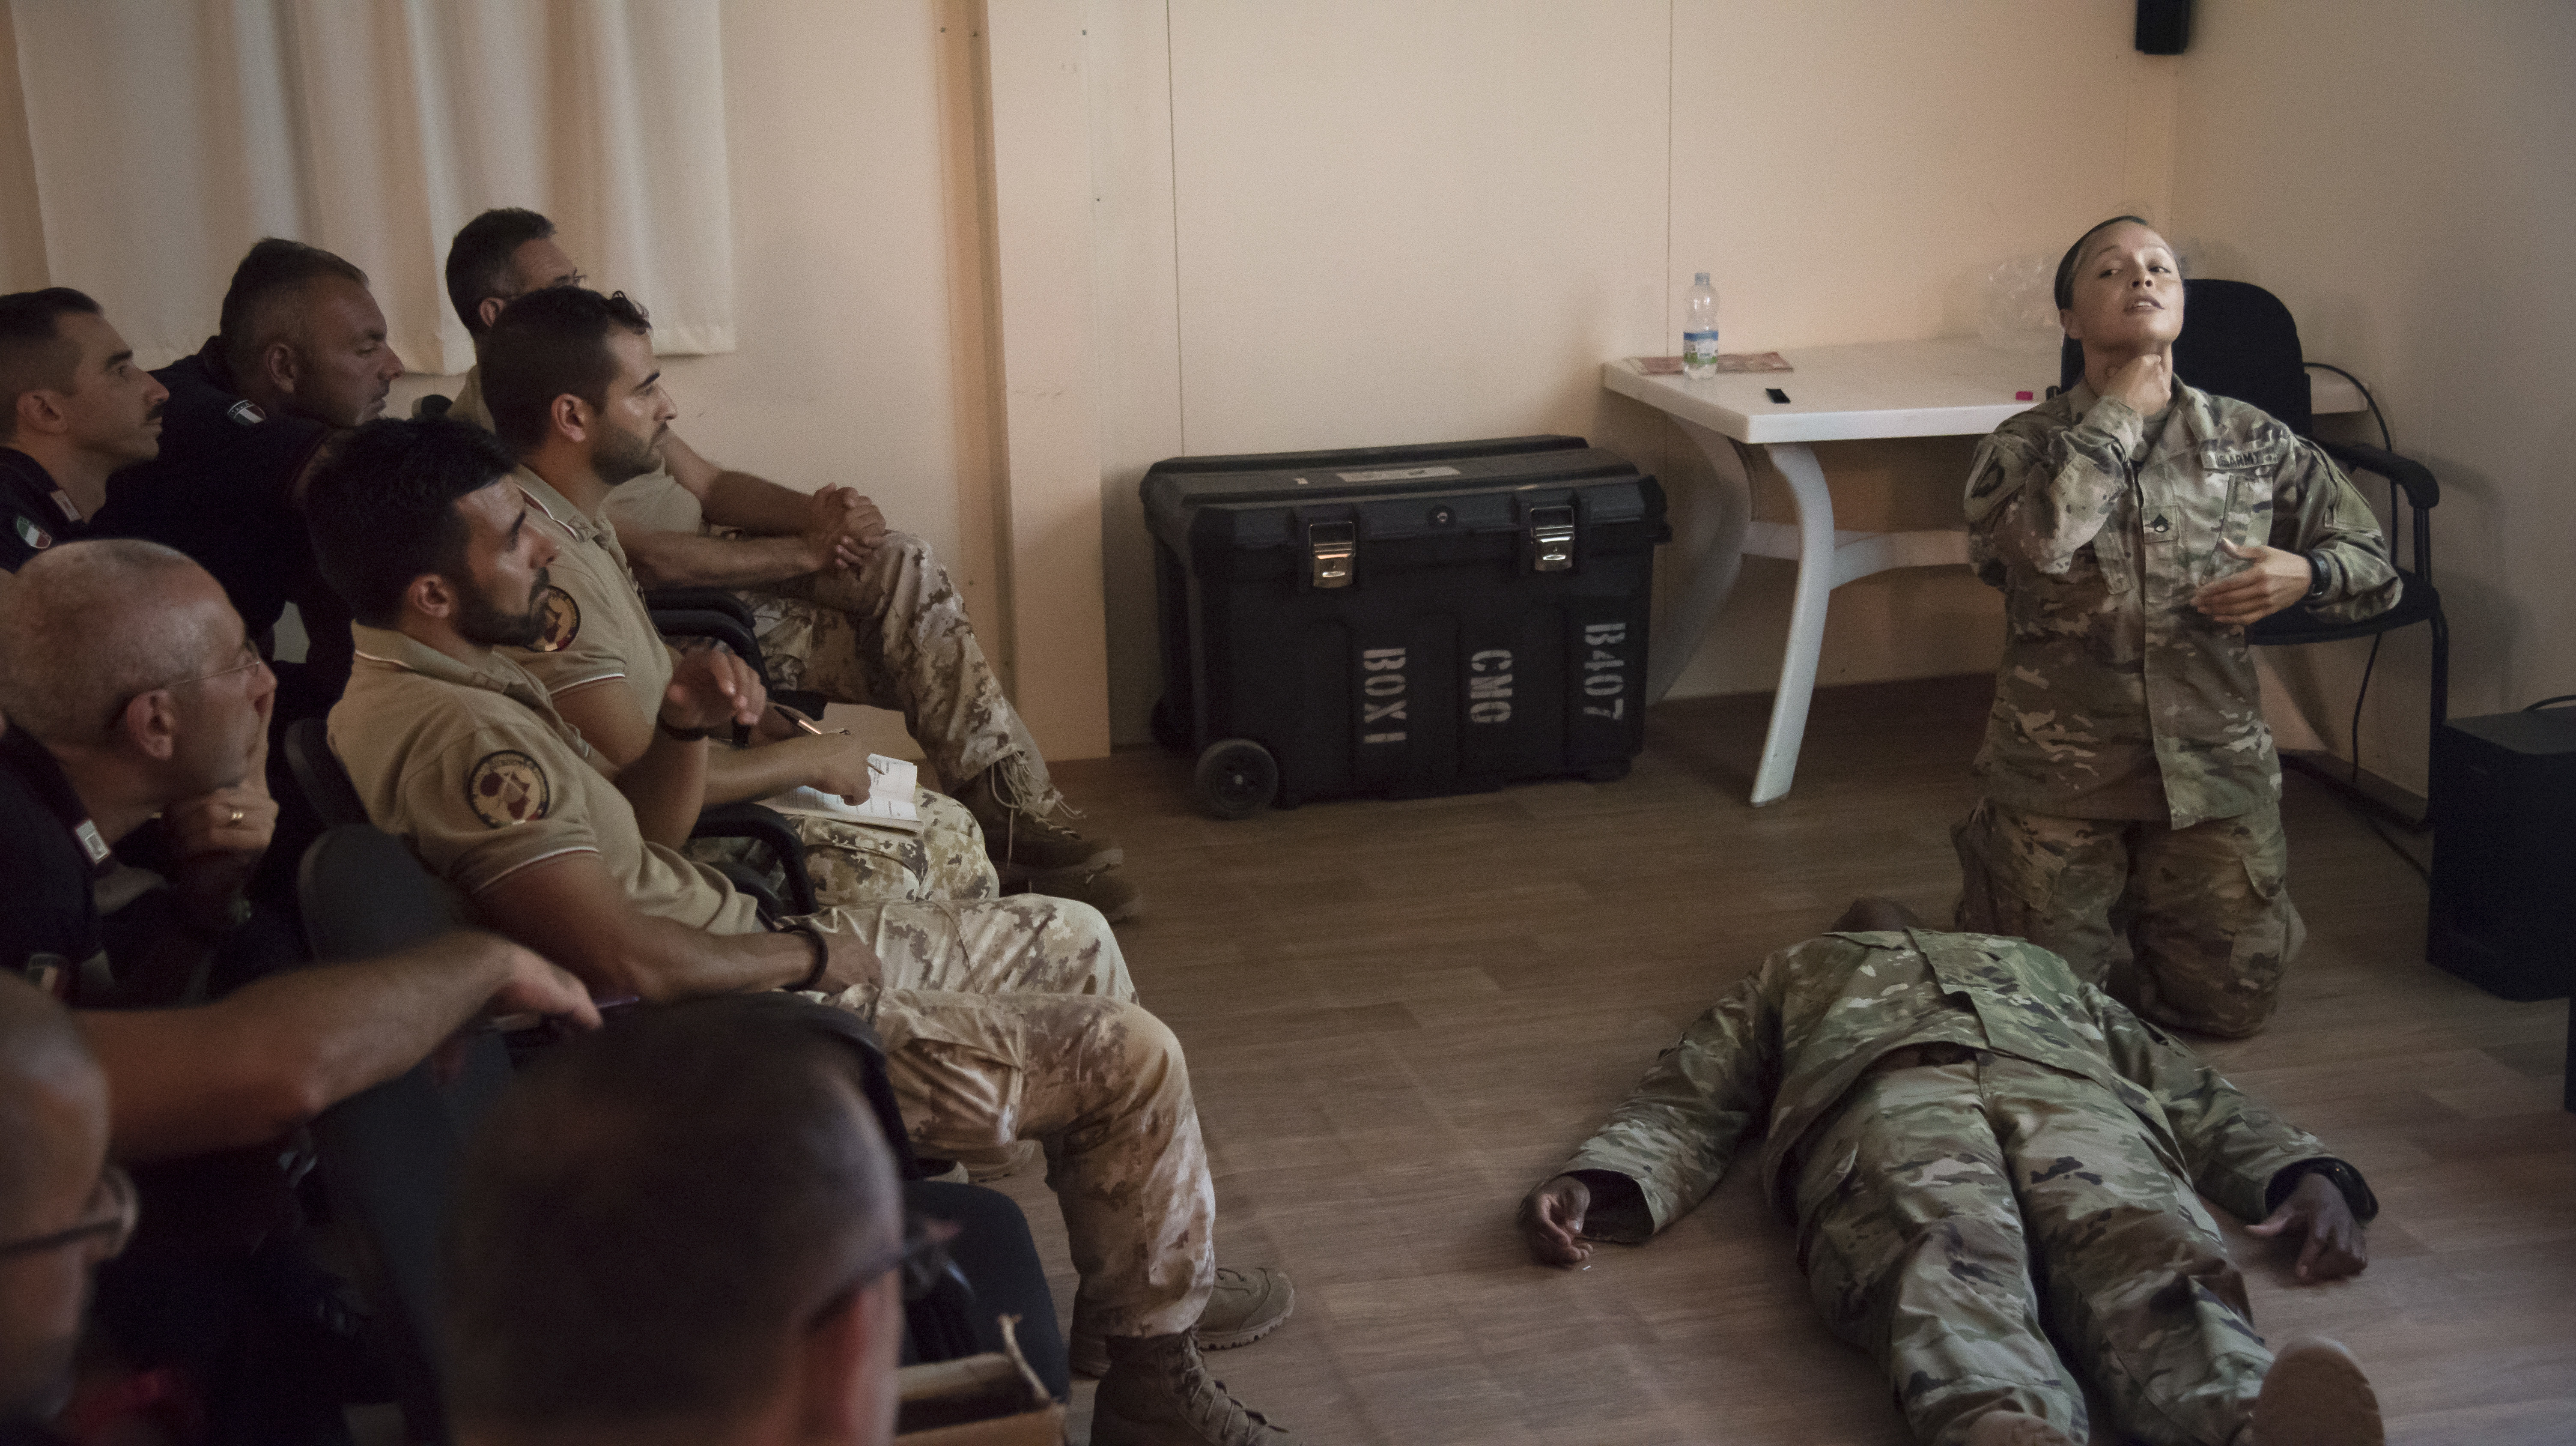 U.S. Army Staff Sgt. Carmen Lozano, a medic with the 403rd Civil Affairs (CA) Battalion Functional Specialty Team (FXSP), assigned to Combined Joint Task Force-Horn of Africa, leads a lesson on airway management for Italian military students at Base Militar Italiano de Supporte, Jan. 15, 2019. Airway management is a primary focus of the Combat Lifesaver Course, conducted for members of the Italian military and Carabinieri by medics from the 403rd CA FXSP. (U.S. Air Force photo by Senior Airman Kirsten Brandes)